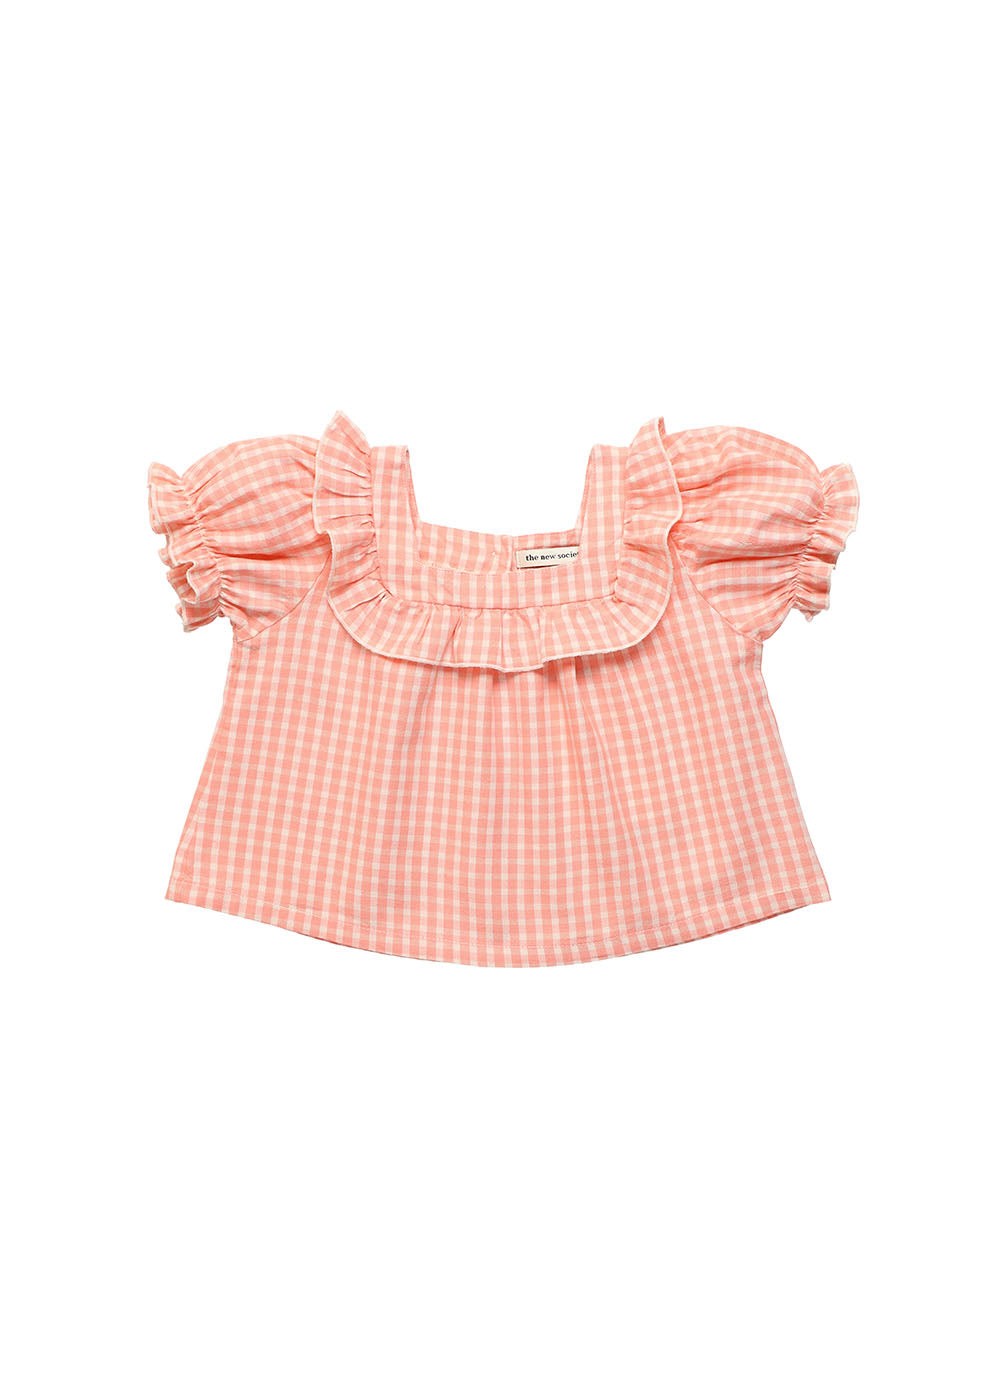 Rachel baby coral check blouse